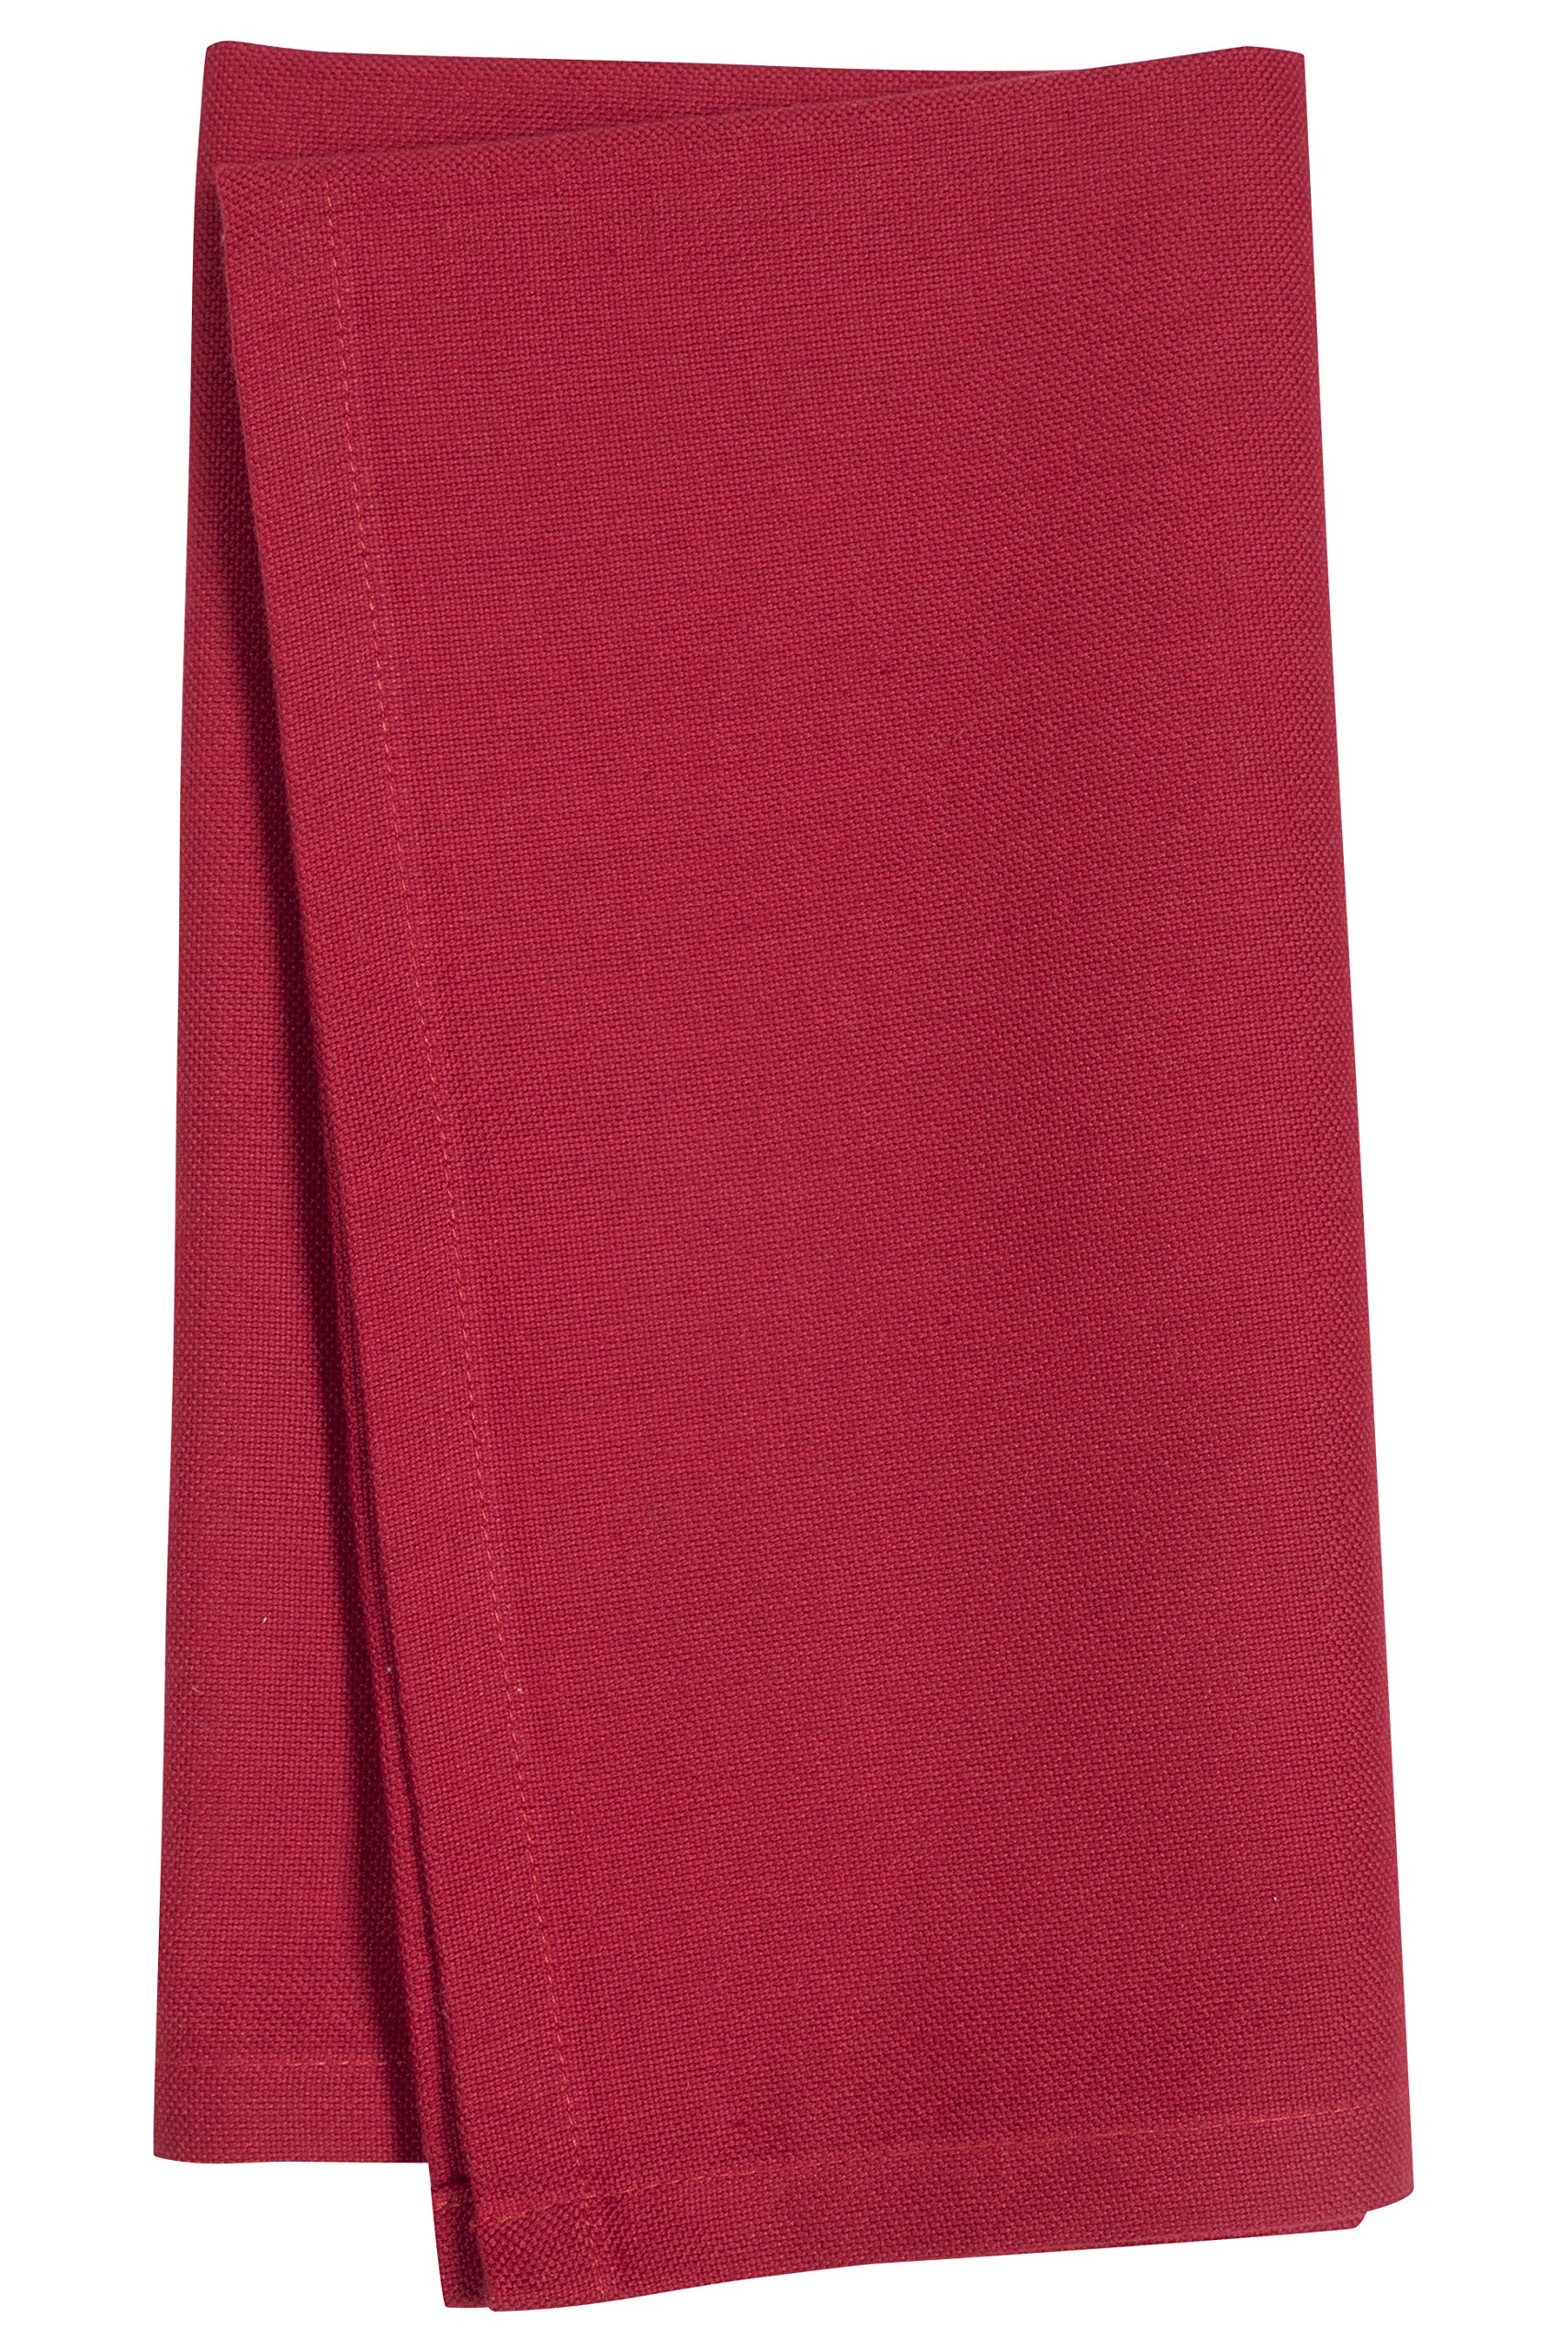 KAF Home Laguna Napkins in Red, Set of 4, 100% Cotton, Machine Washable, 20'' by 20''